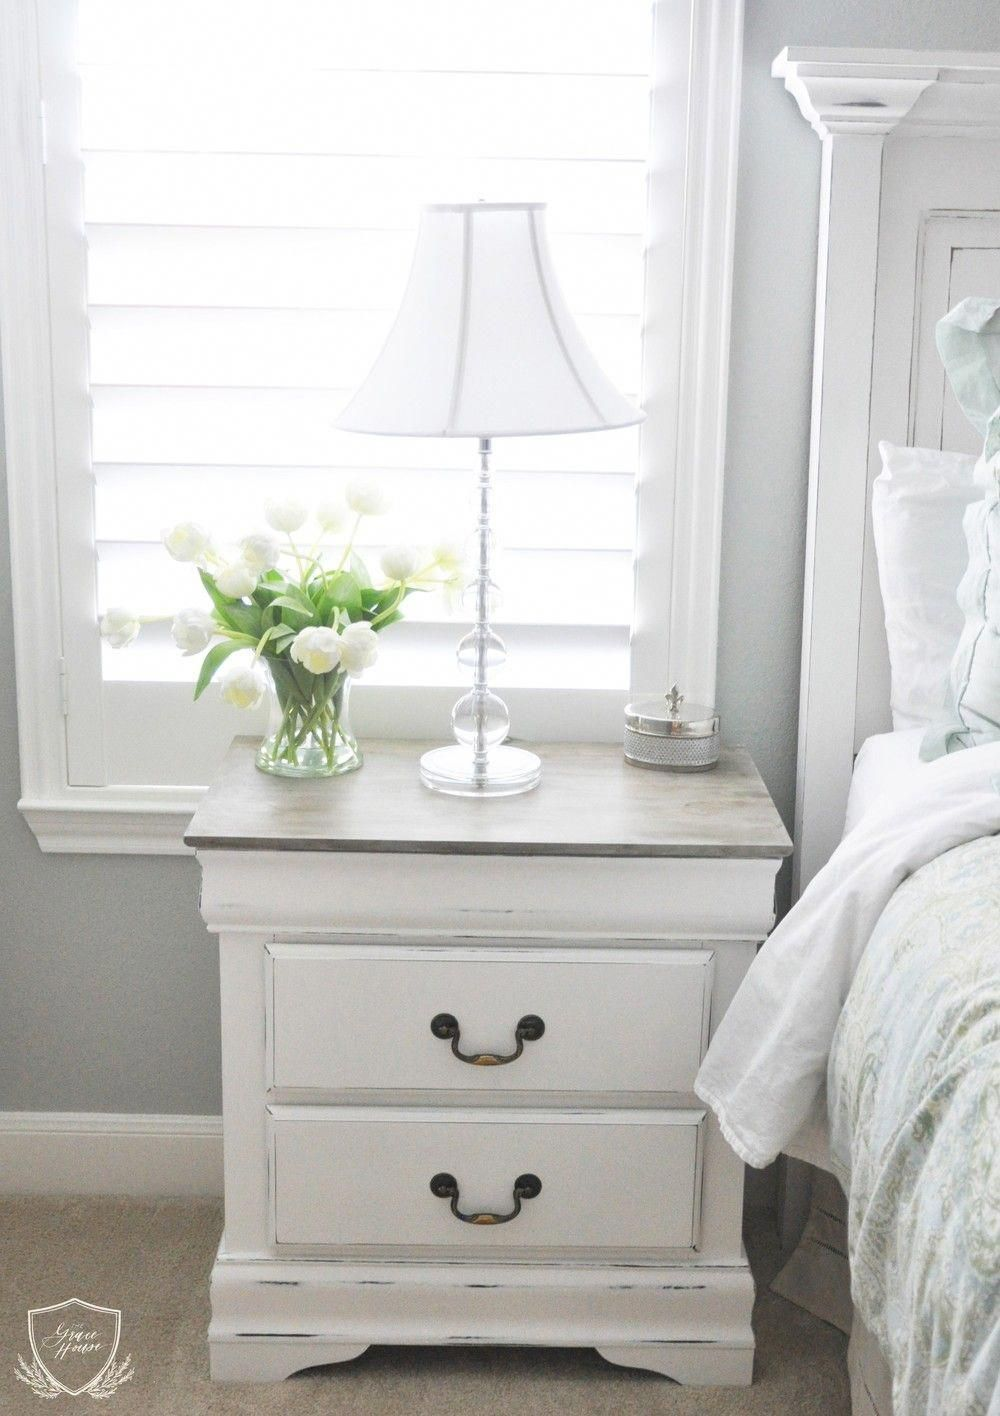 French Linen and Pure White Chalk Paint® help update